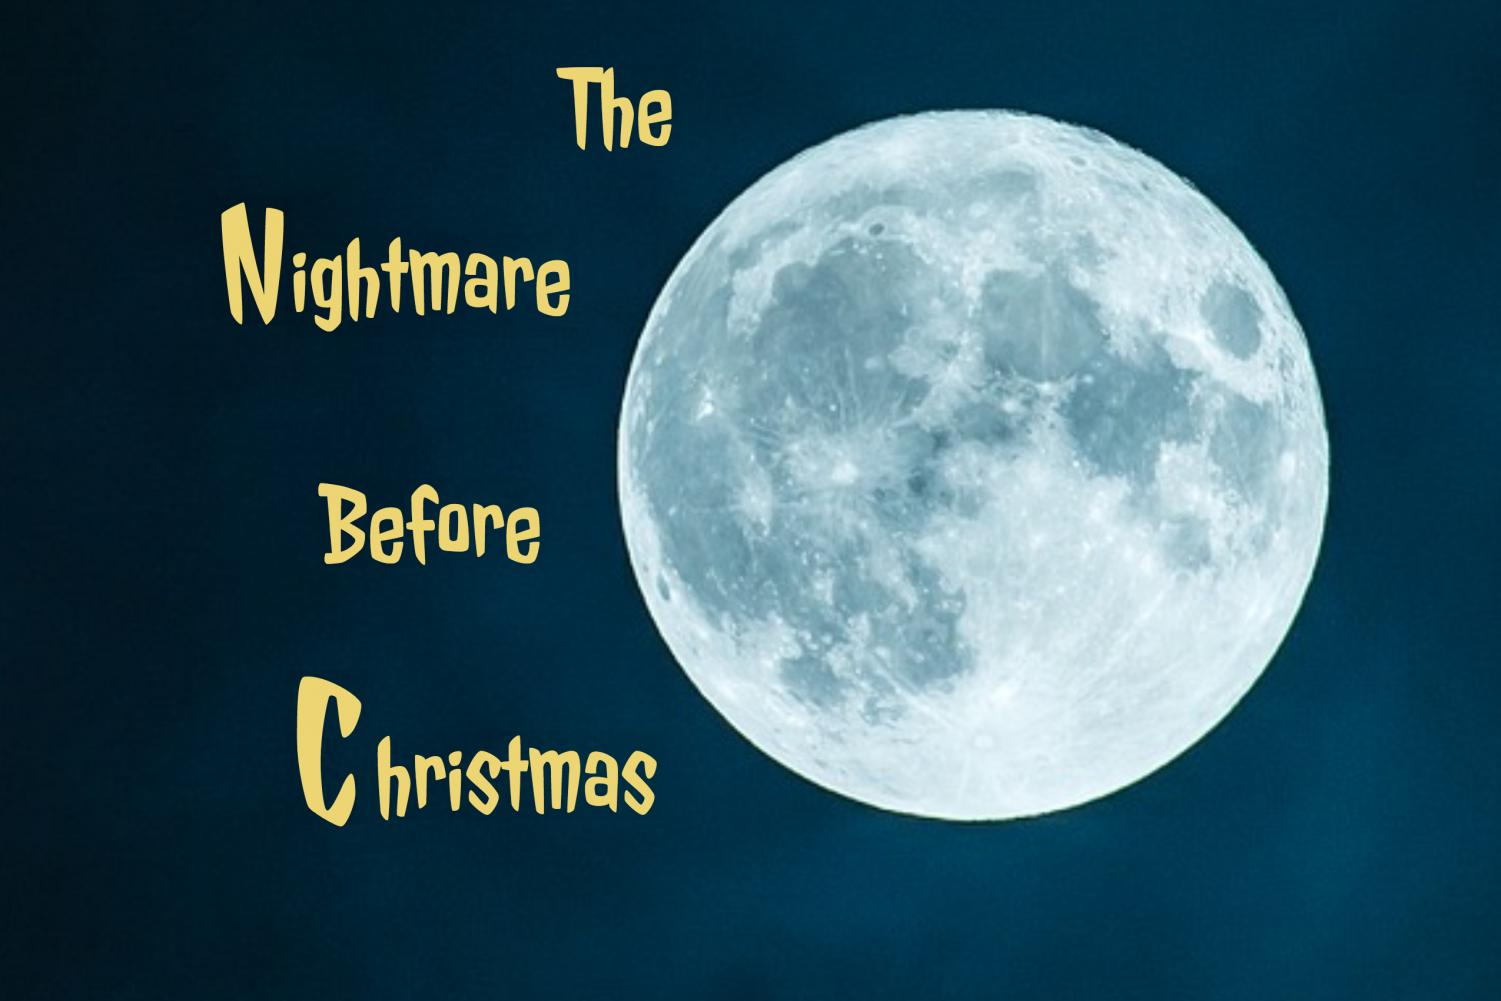 'The Nightmare Before Christmas' (1993) tells the tale of Christmas and Halloween combined.